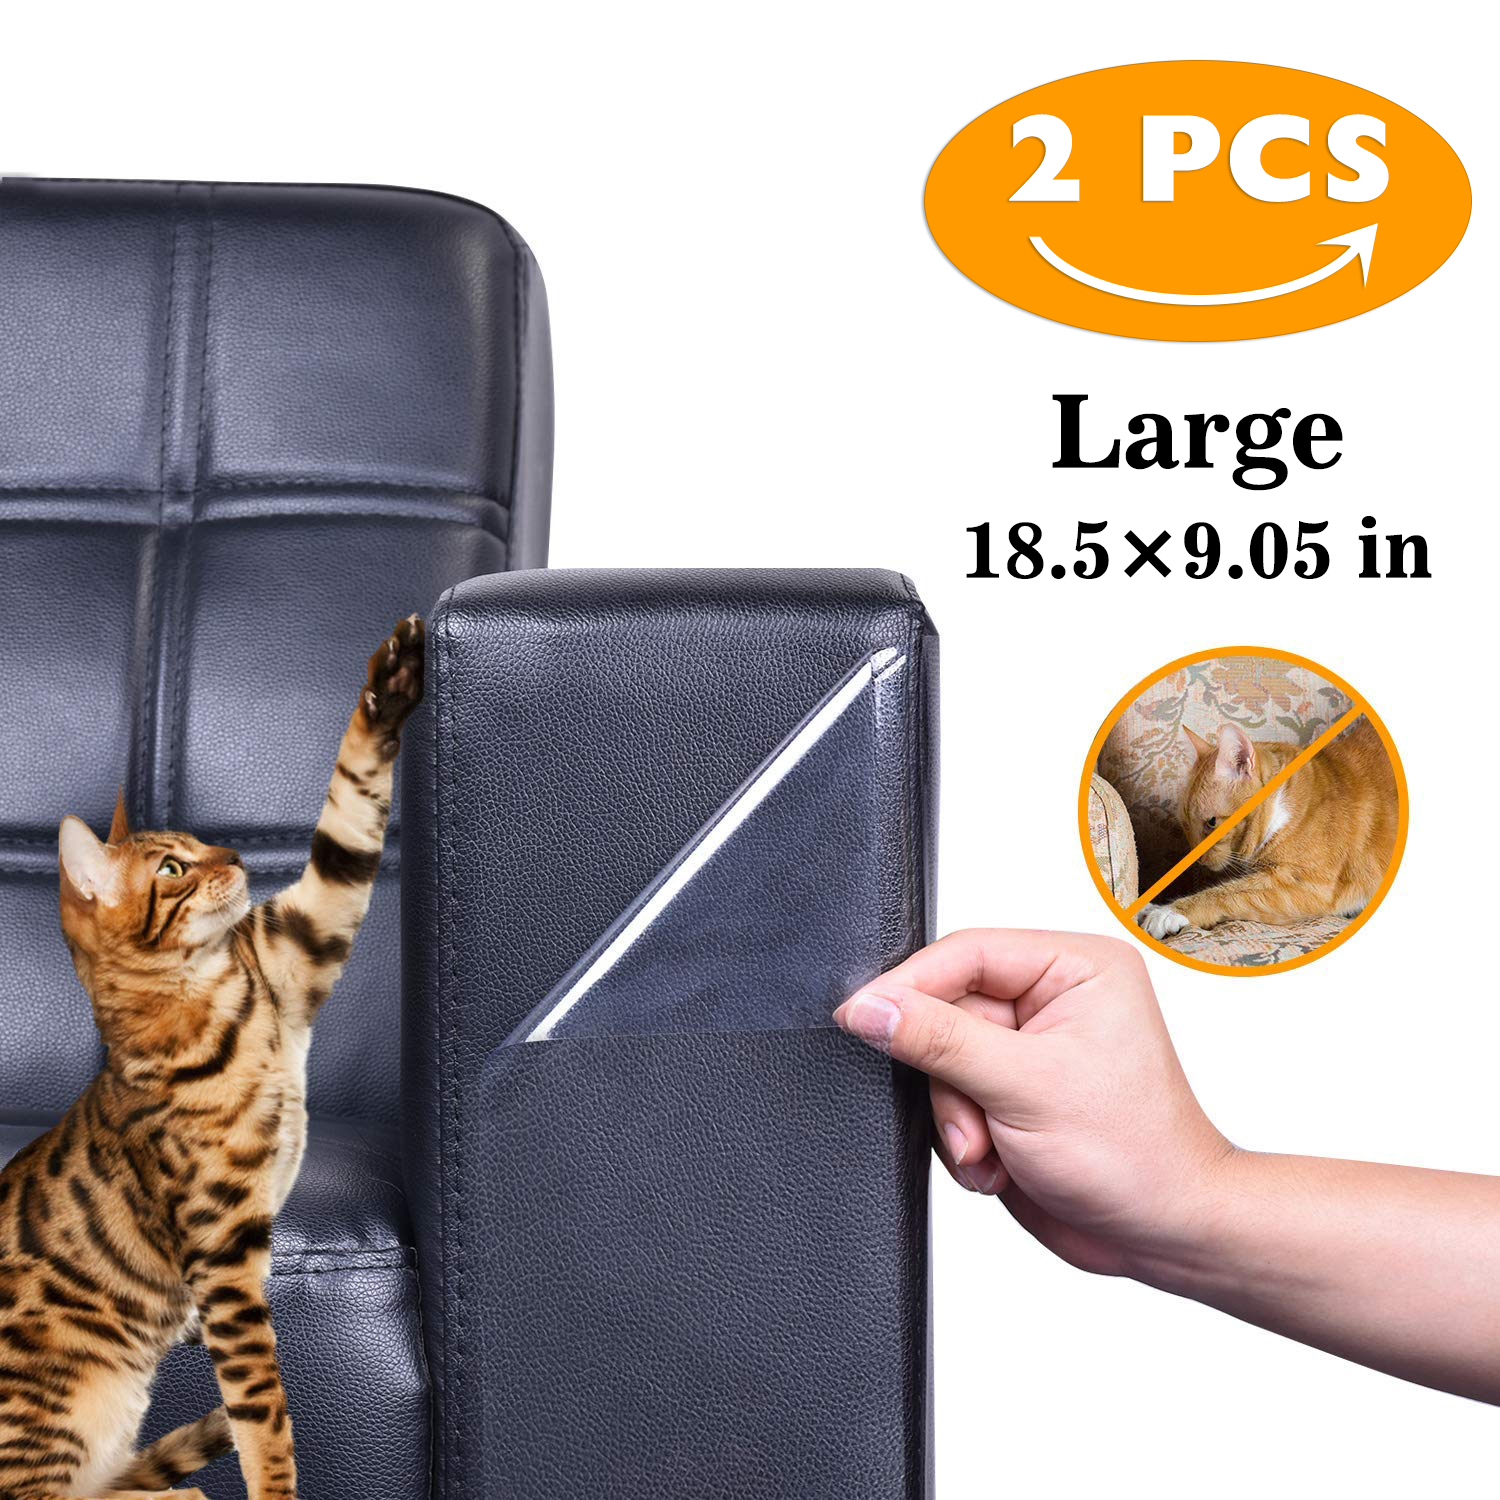 2Pcs Couch Guards Cat Claw Furniture Protector Self-Adhesive Anti Scratching Pad